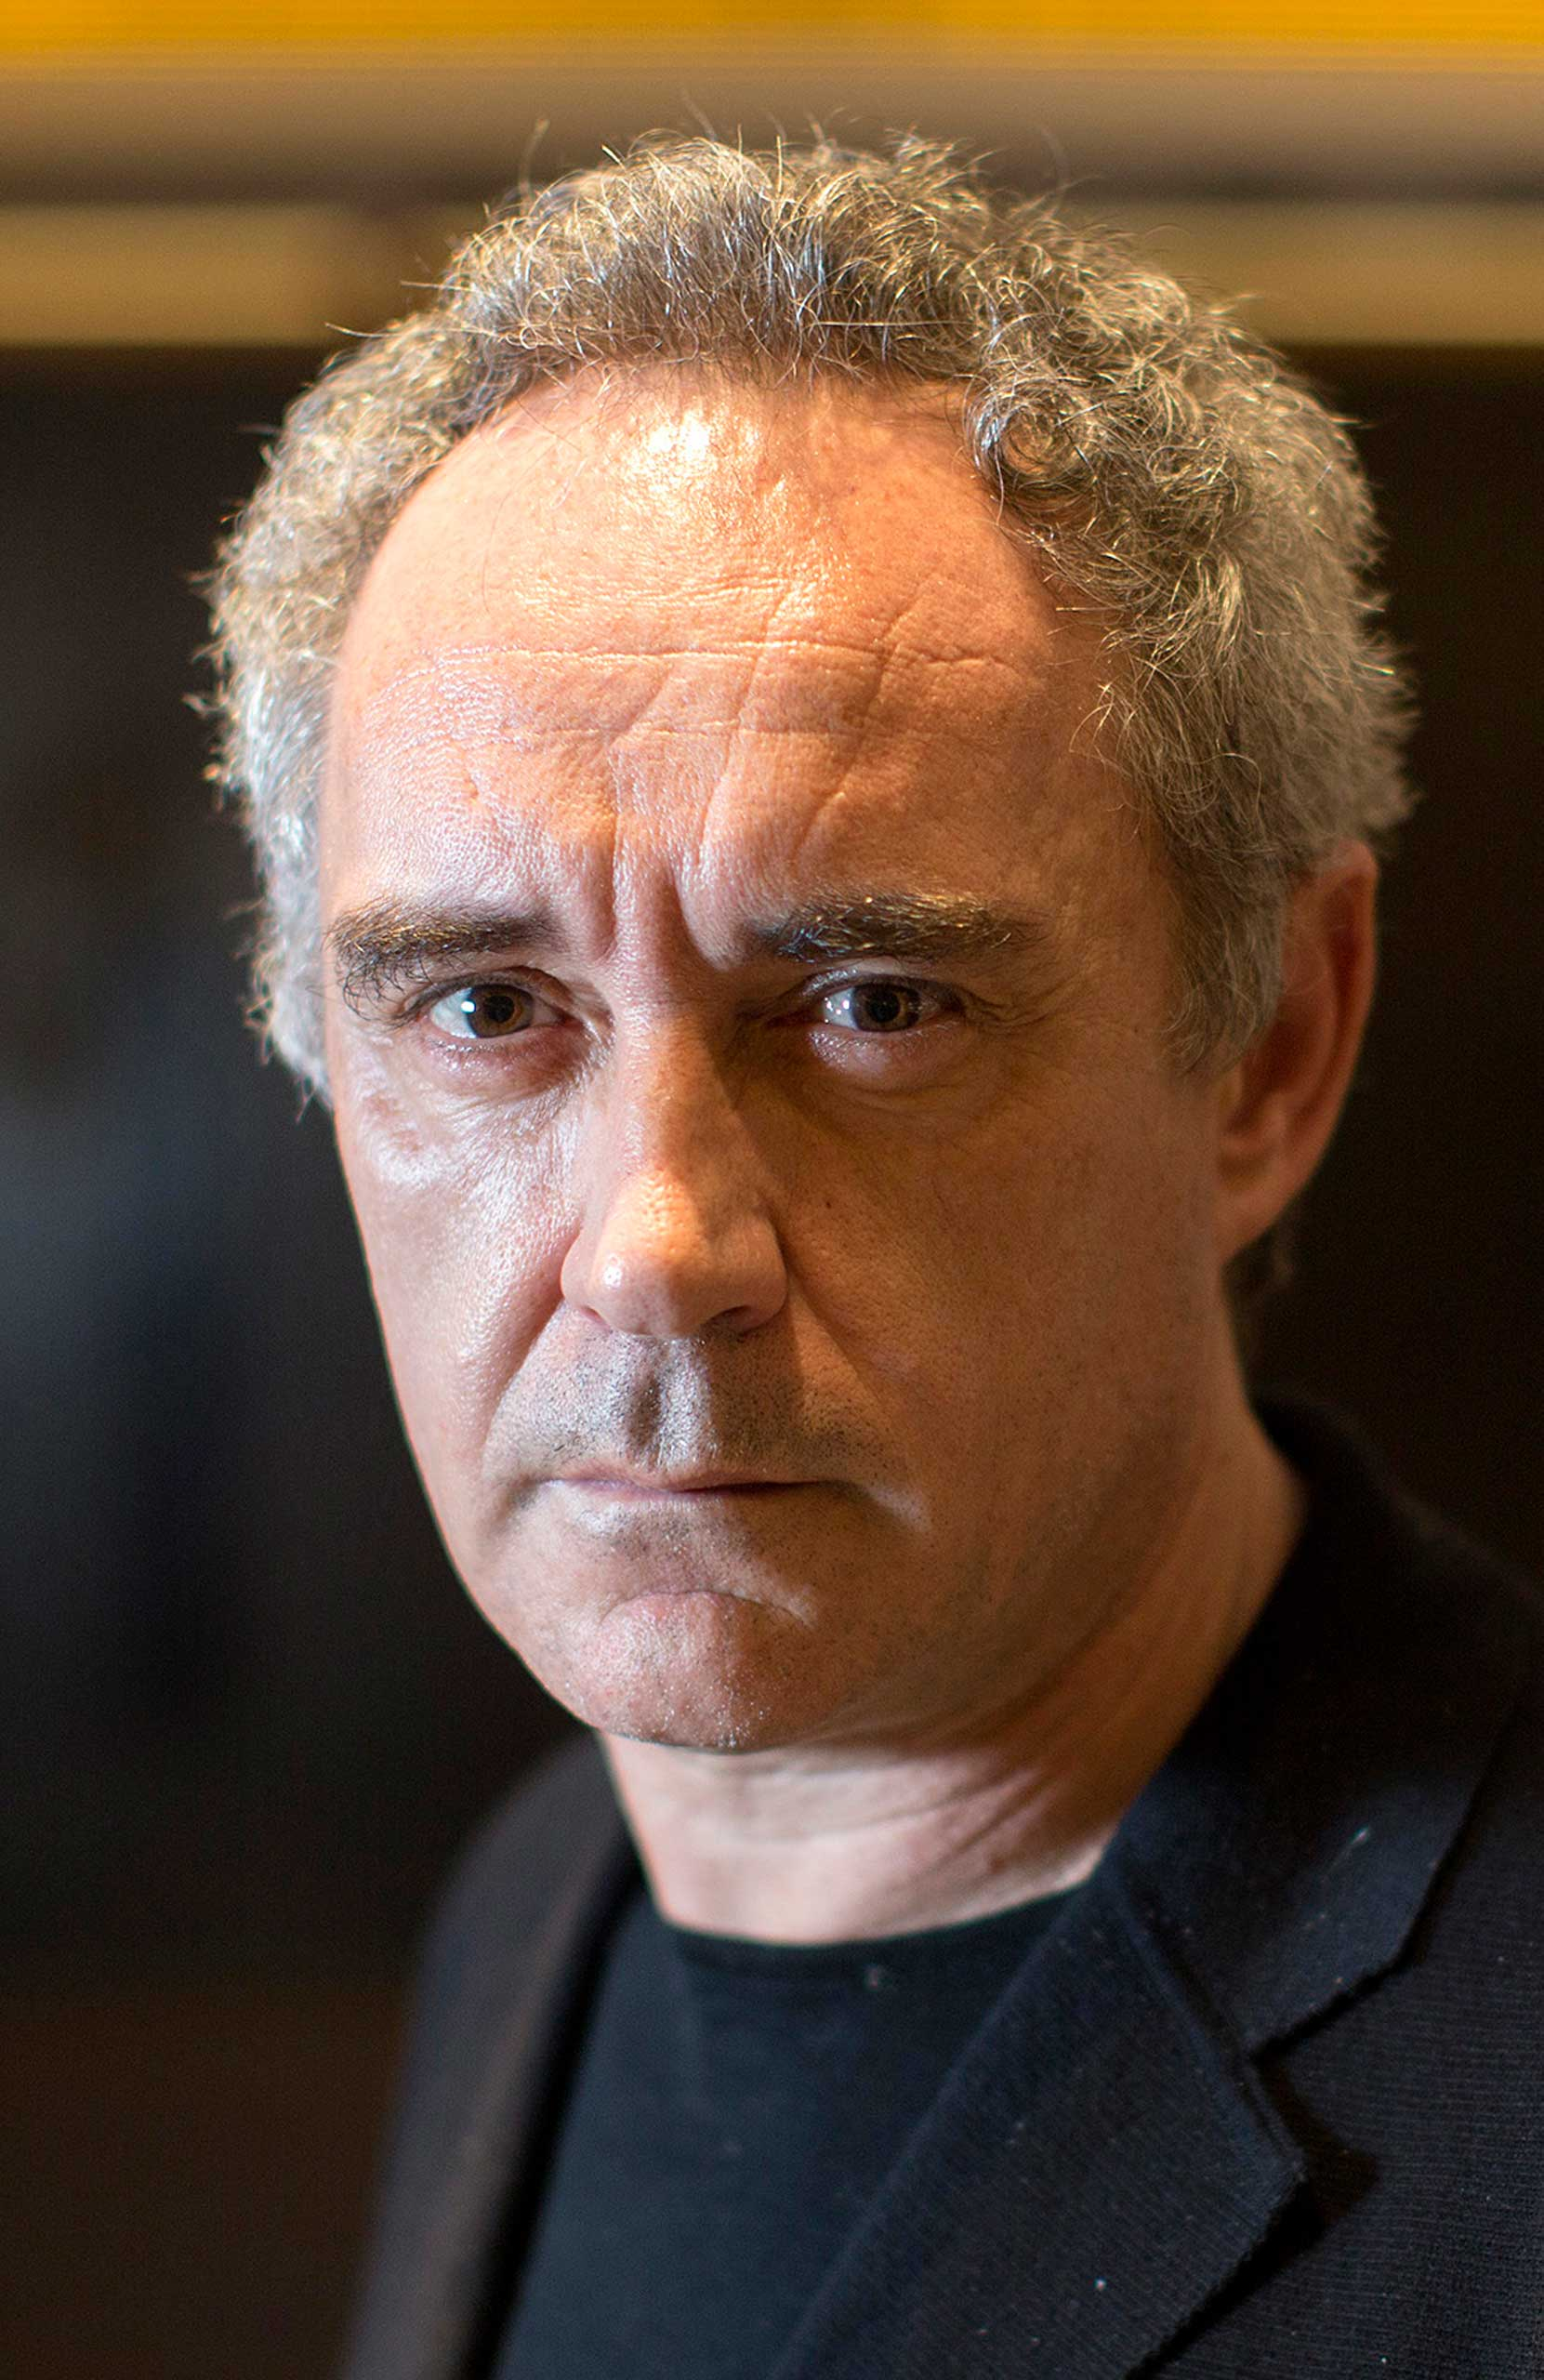 Ferran Adria, chef of the former El Bulli restaurant, poses for a photograph in Hong Kong, China, on Monday, April 1, 2013.